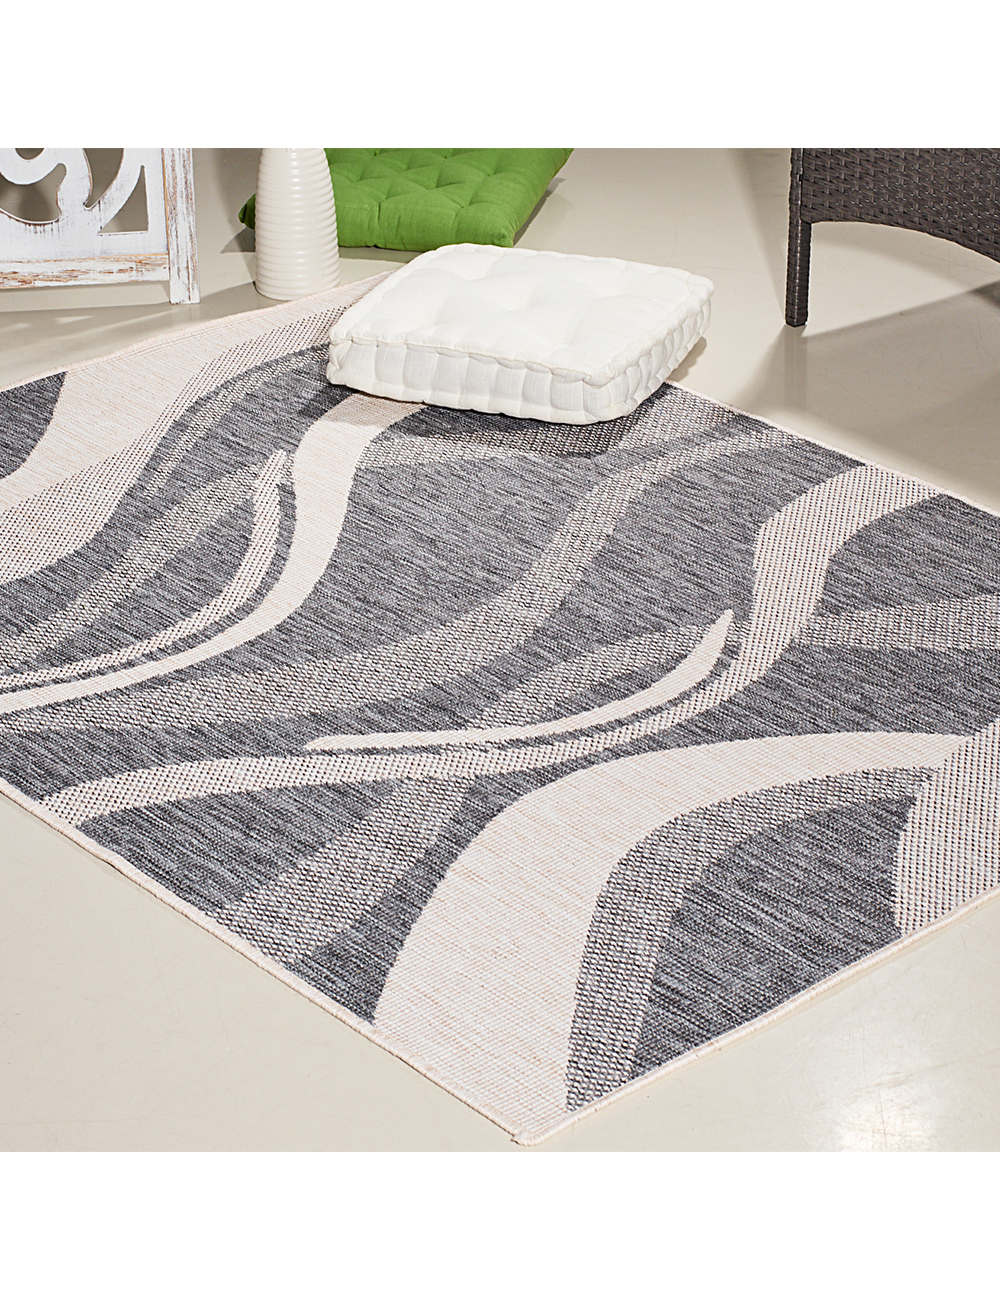 tapis wave r versible 160 x 230 cm. Black Bedroom Furniture Sets. Home Design Ideas